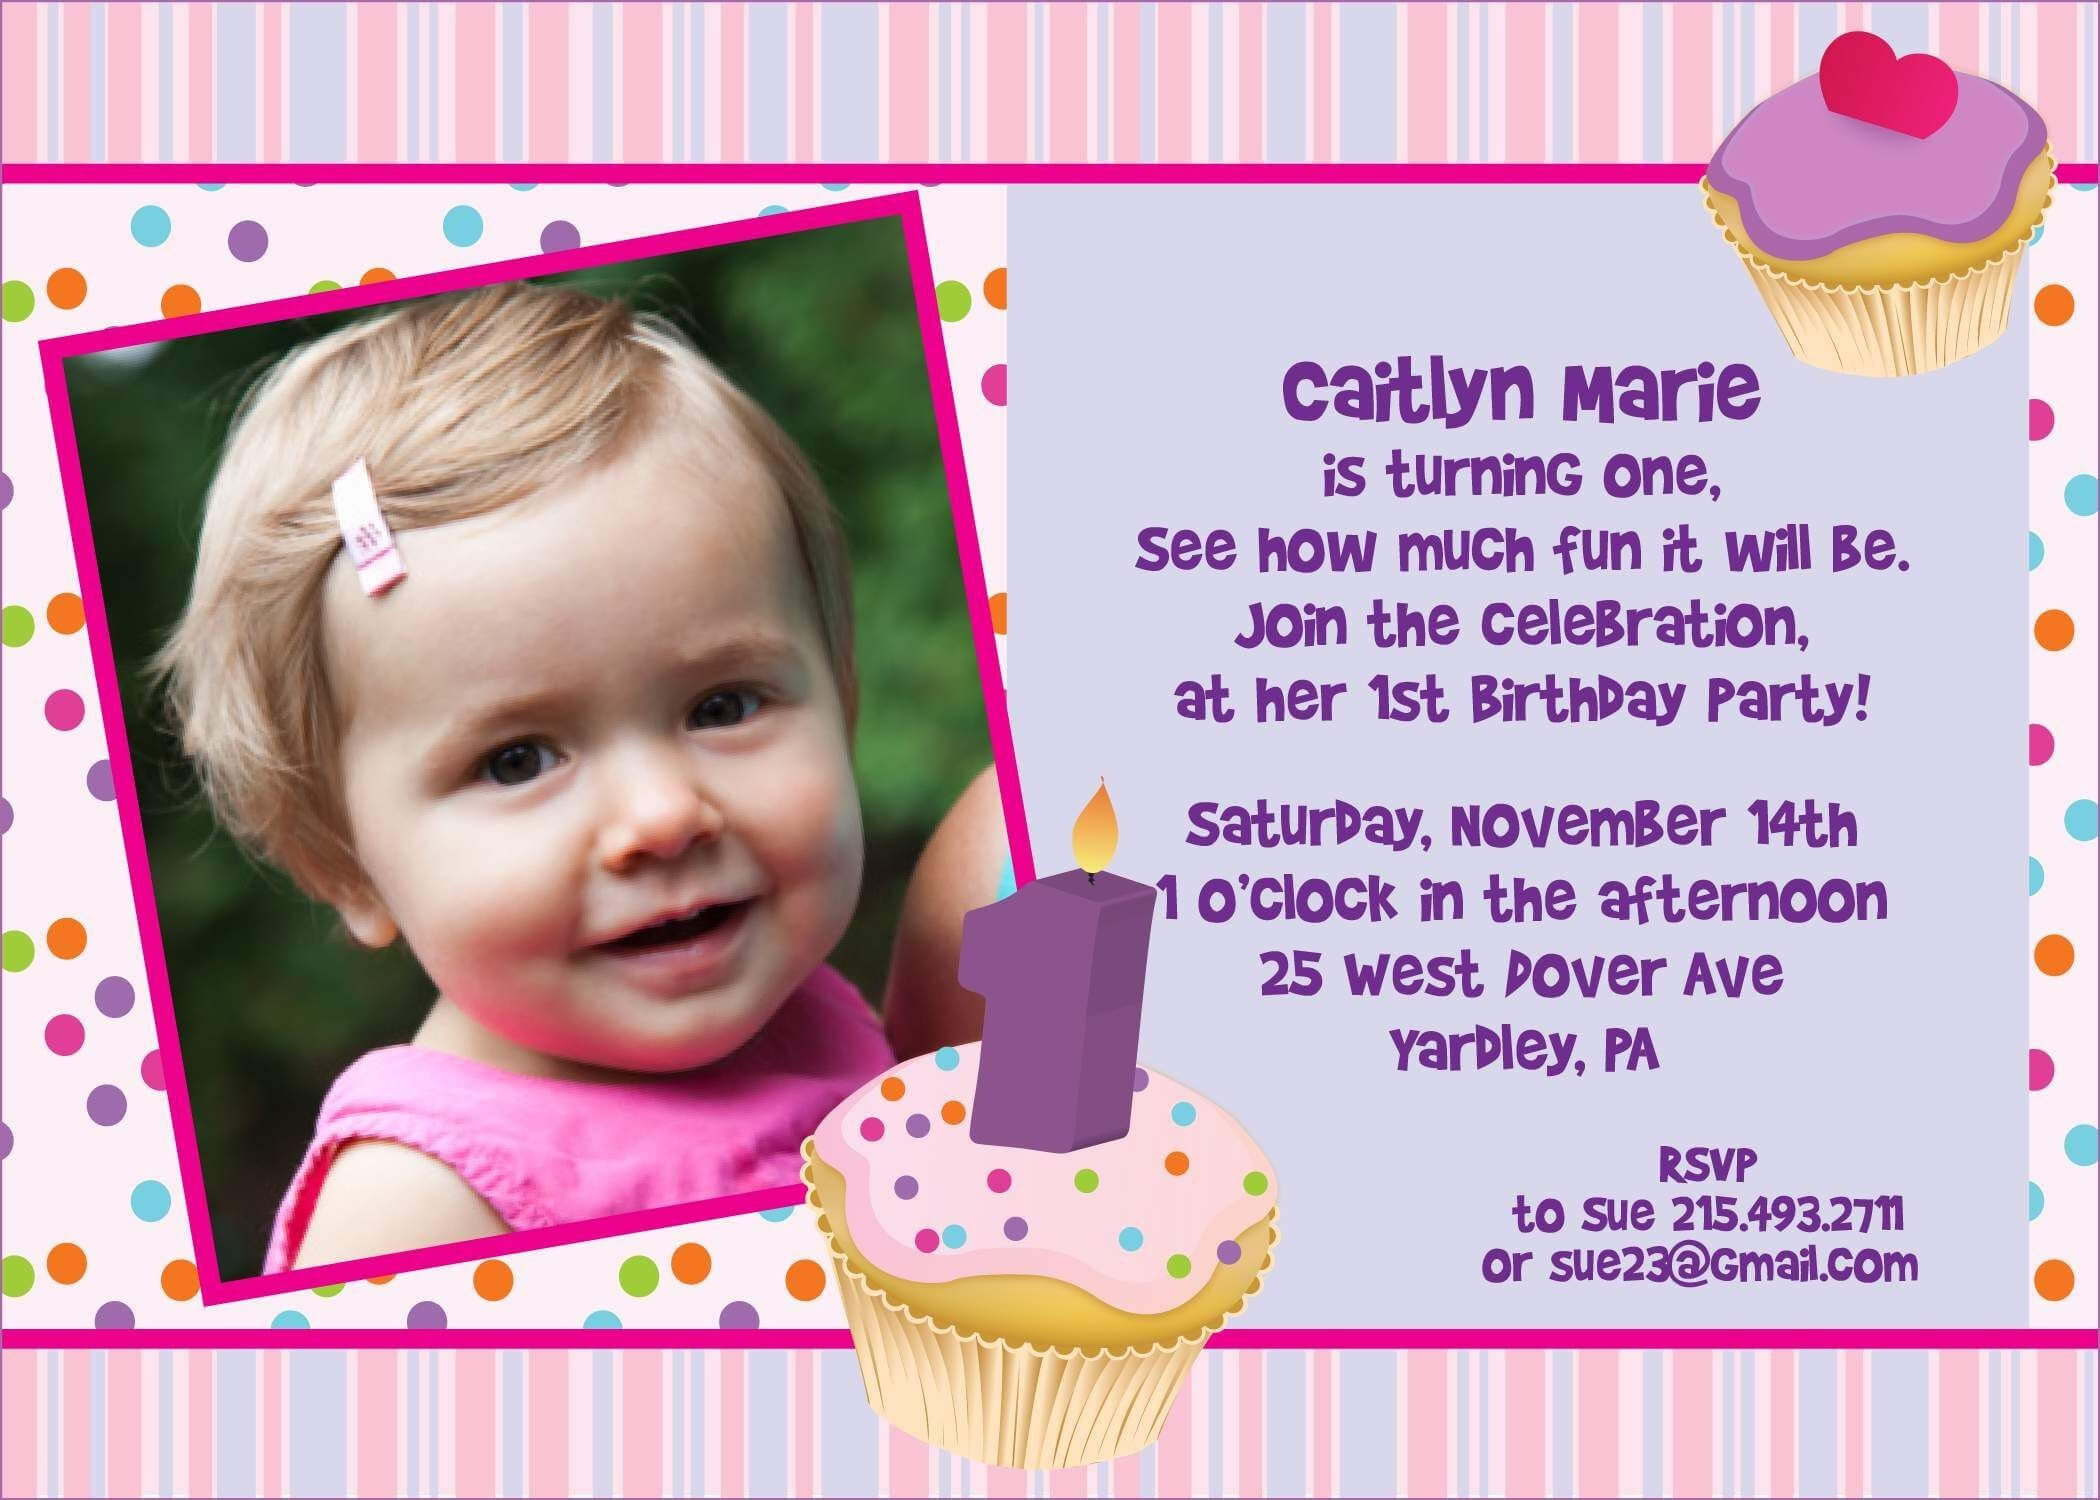 Birthday Card Invitation Sample | Theveliger within First Birthday Invitation Card Template